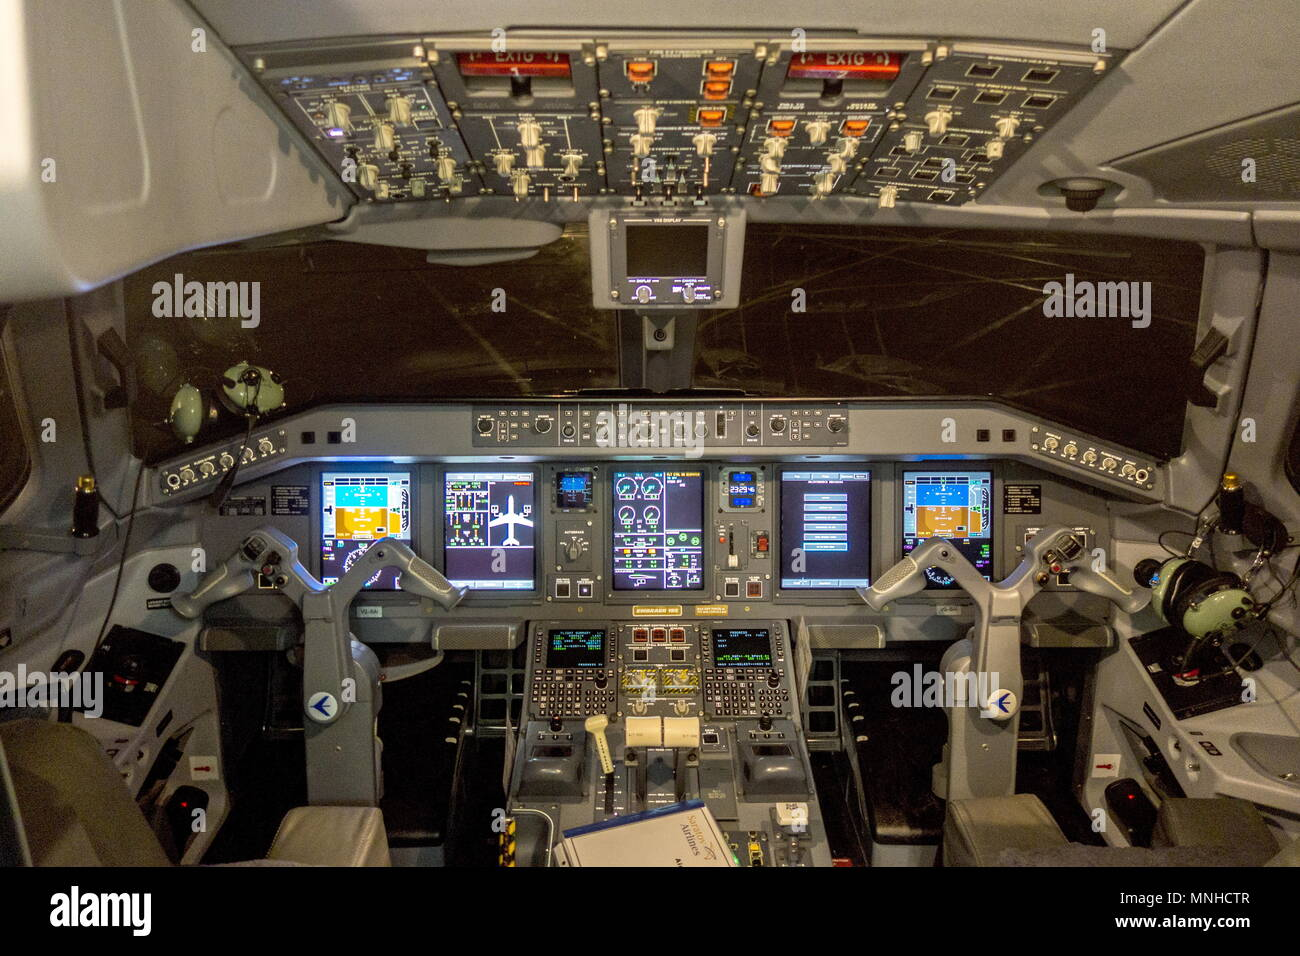 Saratov, Russia. 17th May, 2018. SARATOV, RUSSIA - MAY 17, 2018: The cockpit of an Embraer 190 jet airliner which has joined the fleet of Saratov Airlines under the new brand name Ivolga Airlines; starting from May 31, 2018, Saratov Airlines is to cease its activities. Denis Zhabkin/TASS Credit: ITAR-TASS News Agency/Alamy Live News - Stock Image